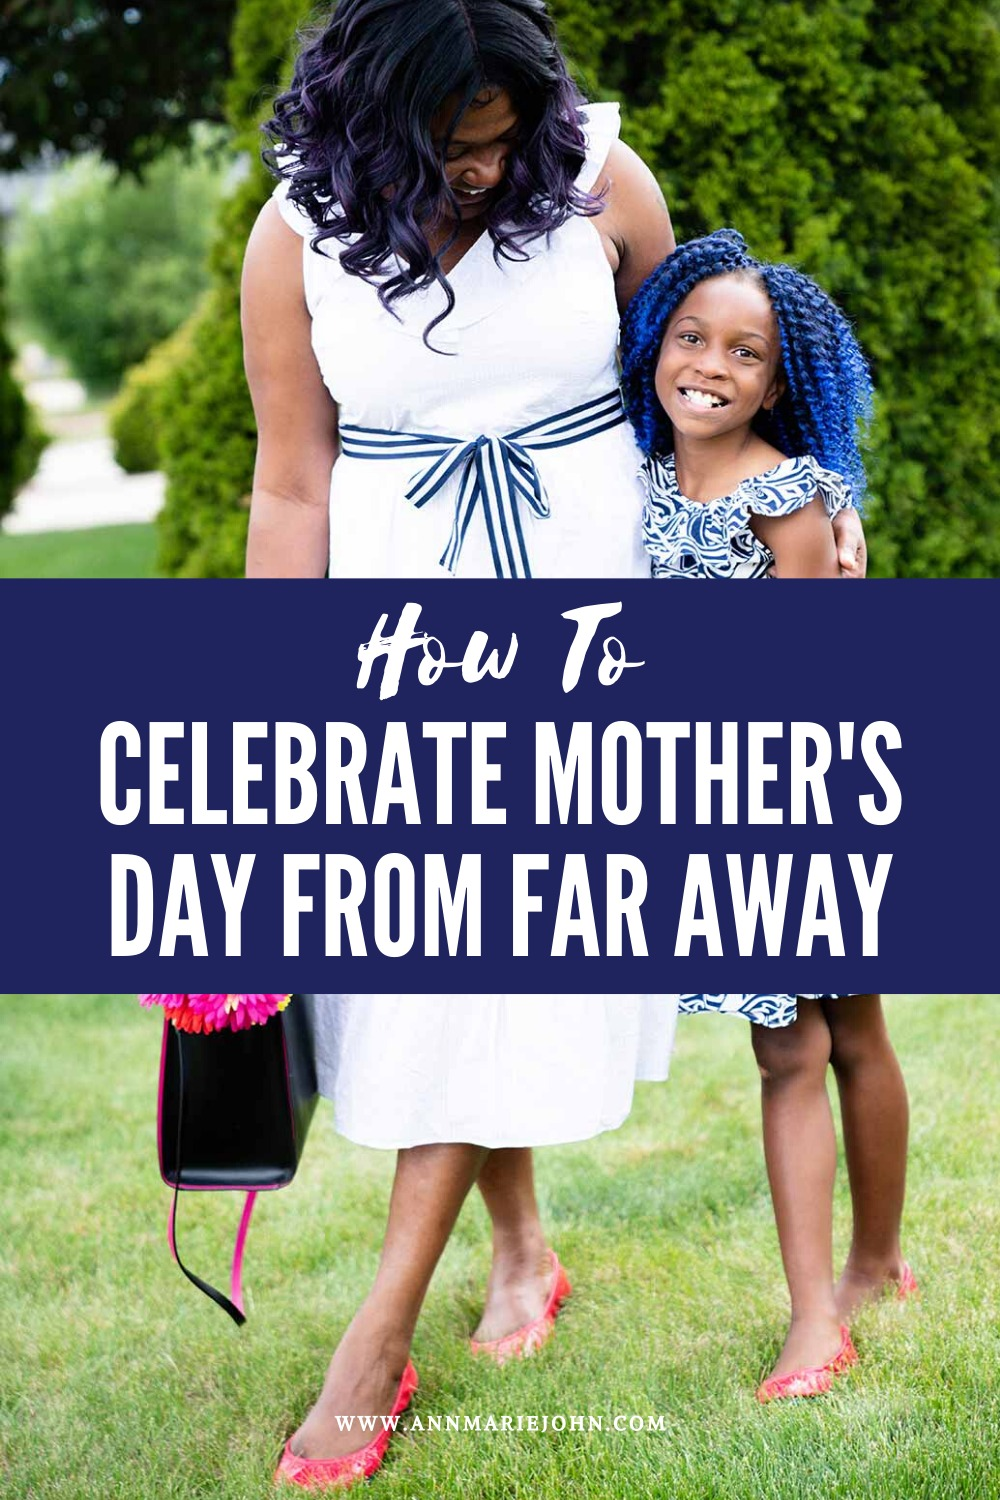 How to Celebrate Mother's Day From Far Away - Mother-Daughter Tieks